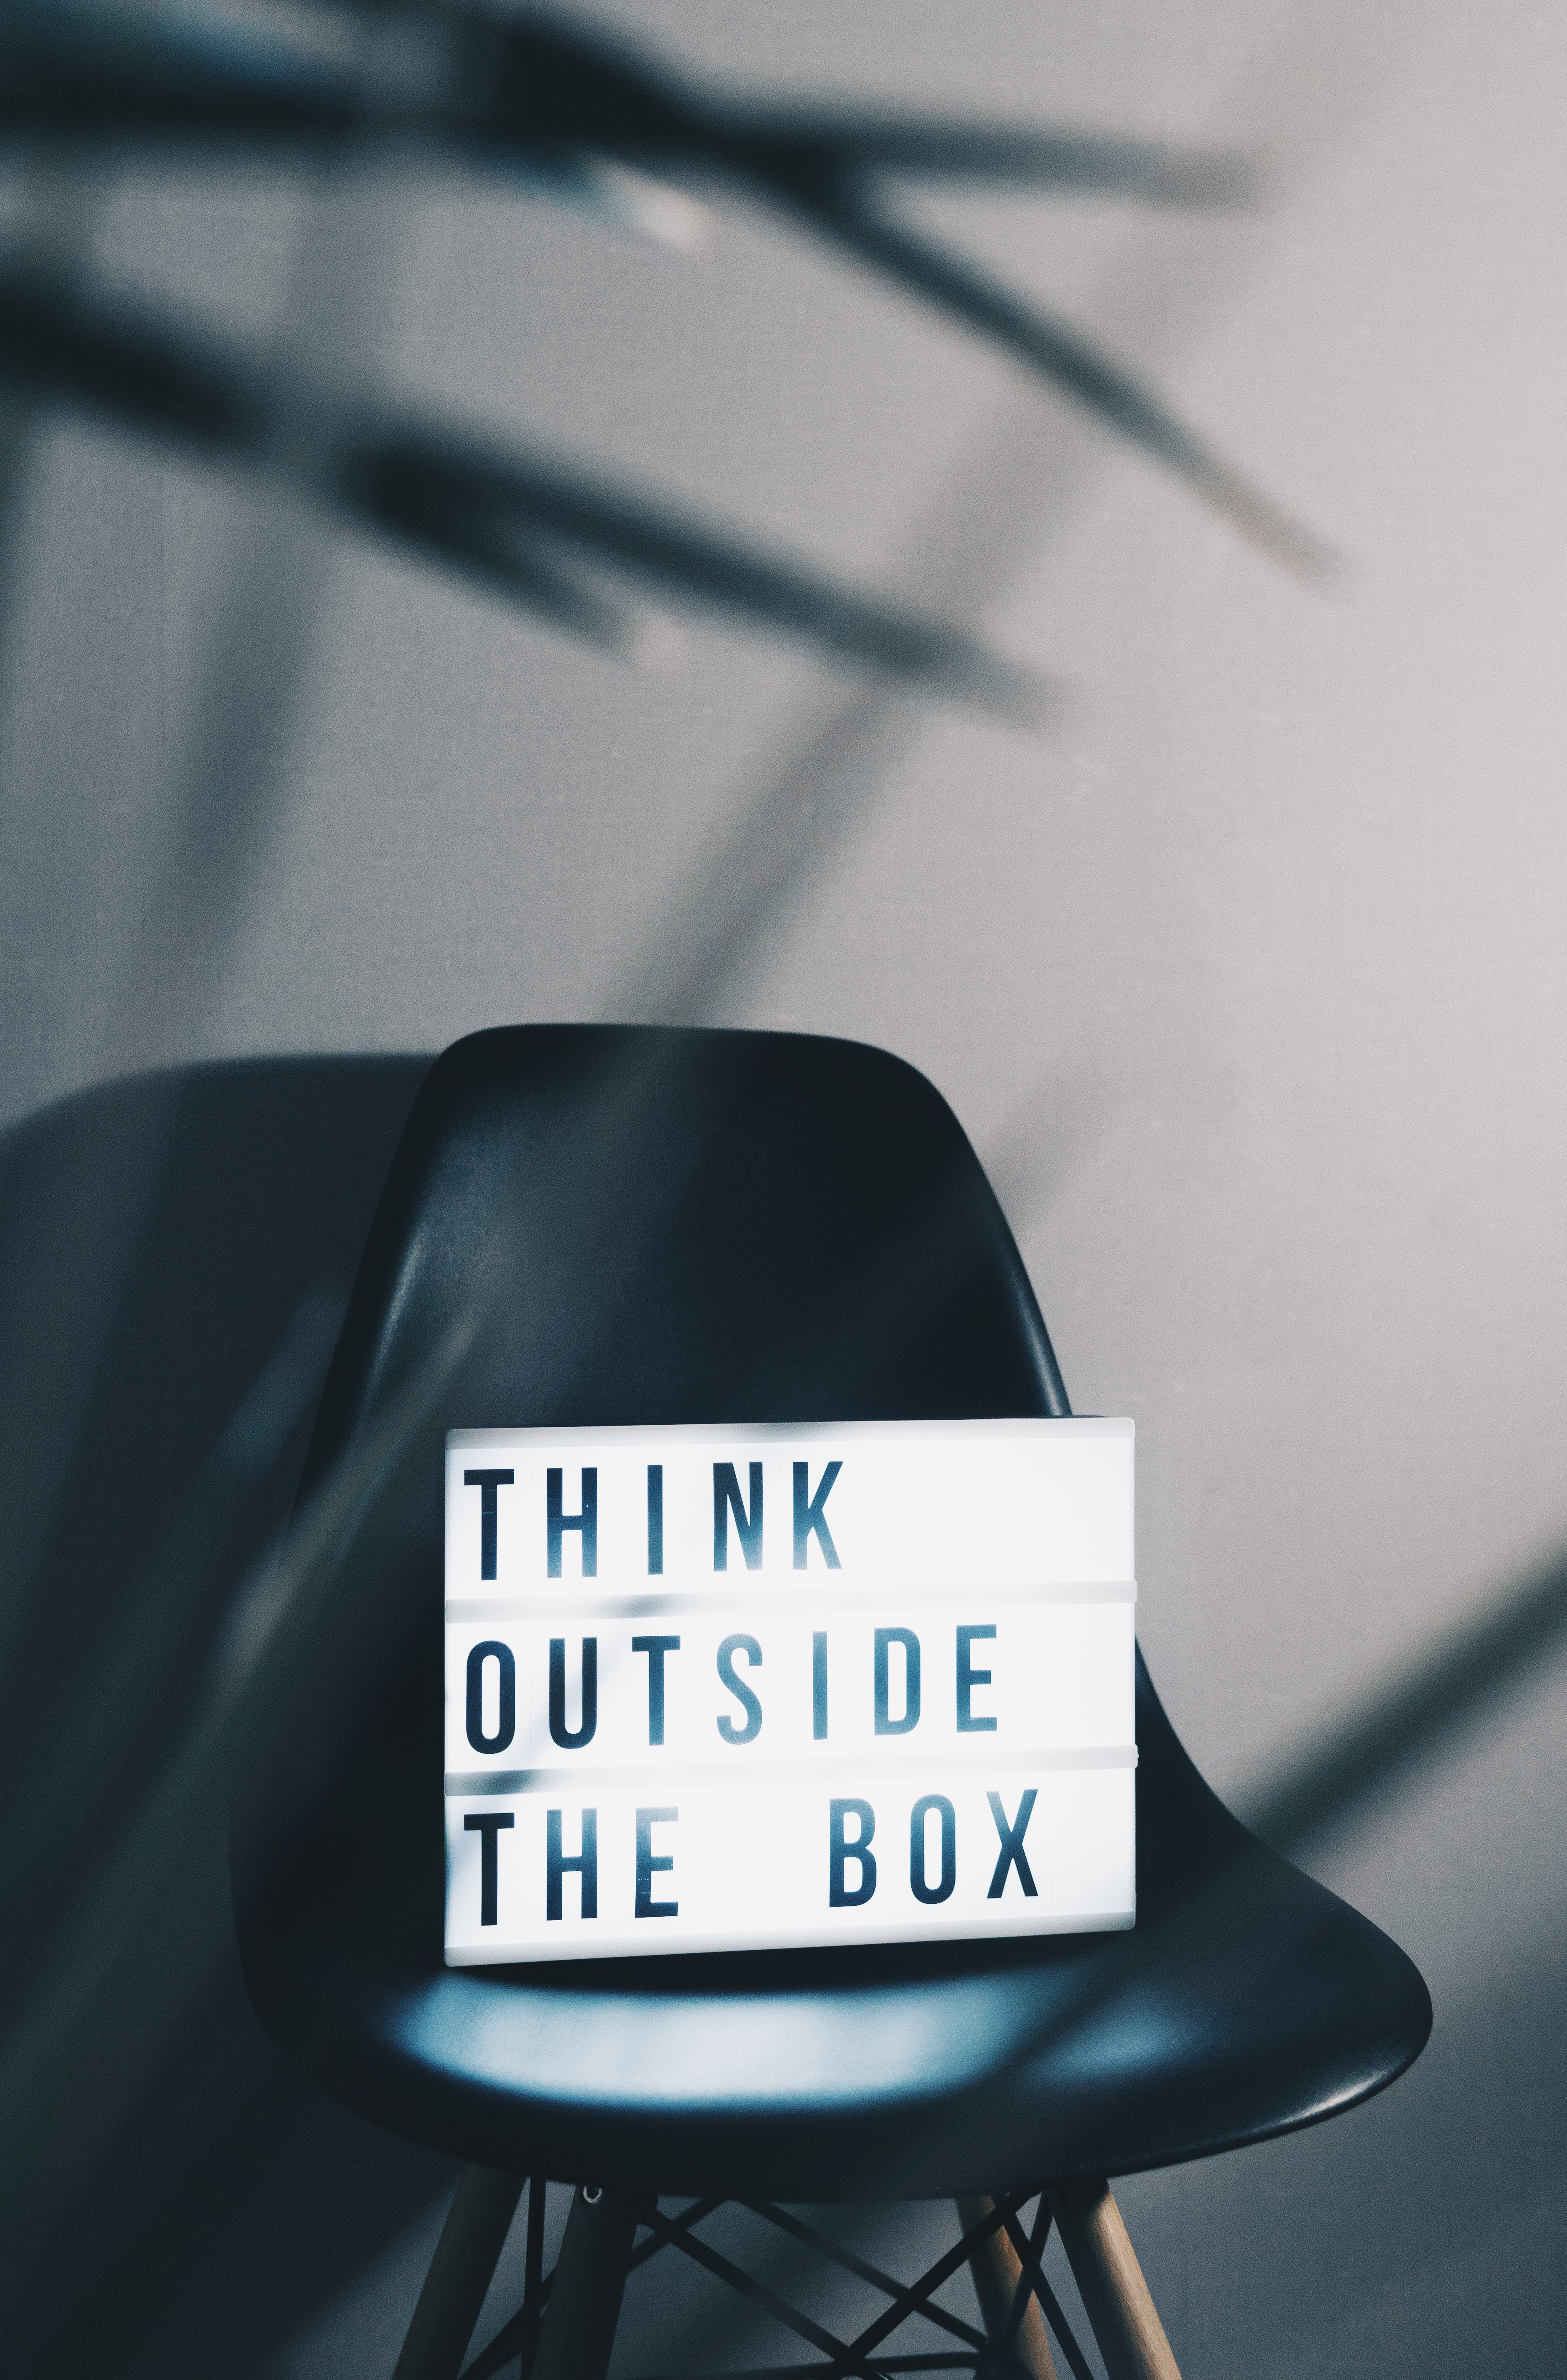 Thinkoutofthebox